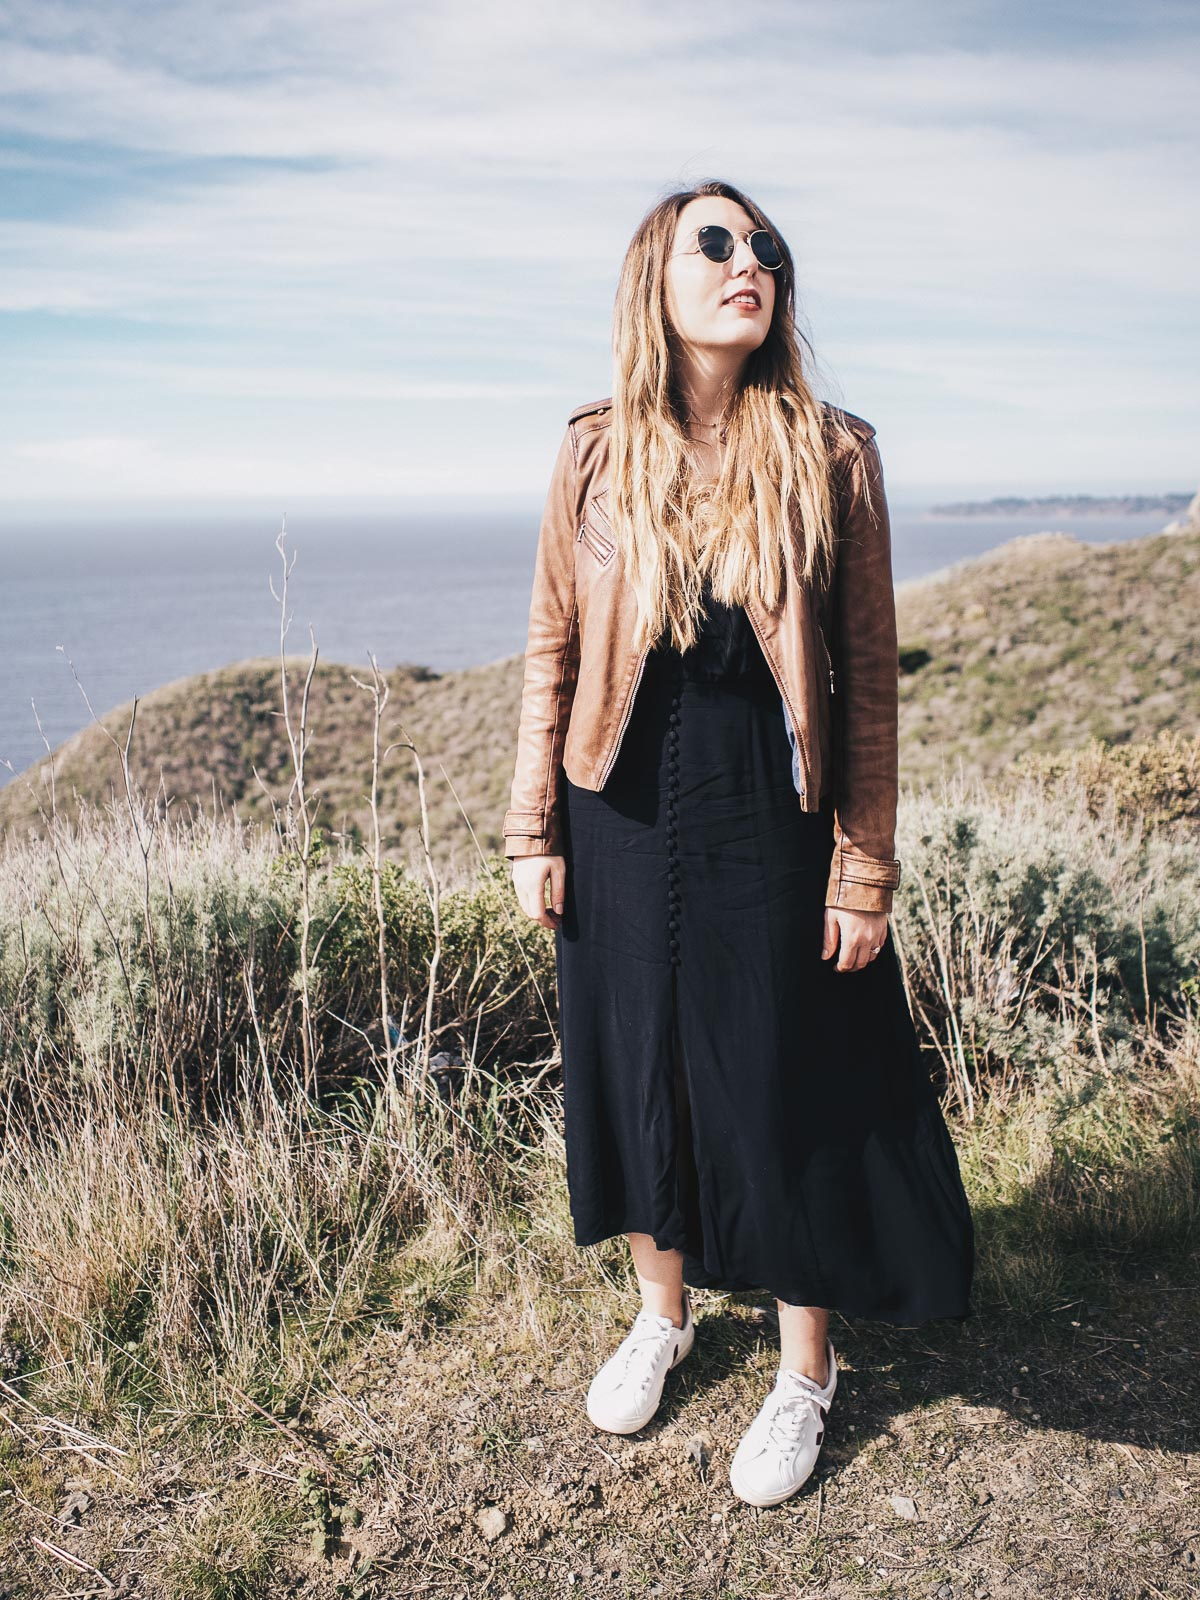 Springtime in California: featuring an Urban Outfitters black dress, Massimo Dutti brown leather jacket, Veja white sneakers and Ray-Ban sunglasses | Wolf & Stag